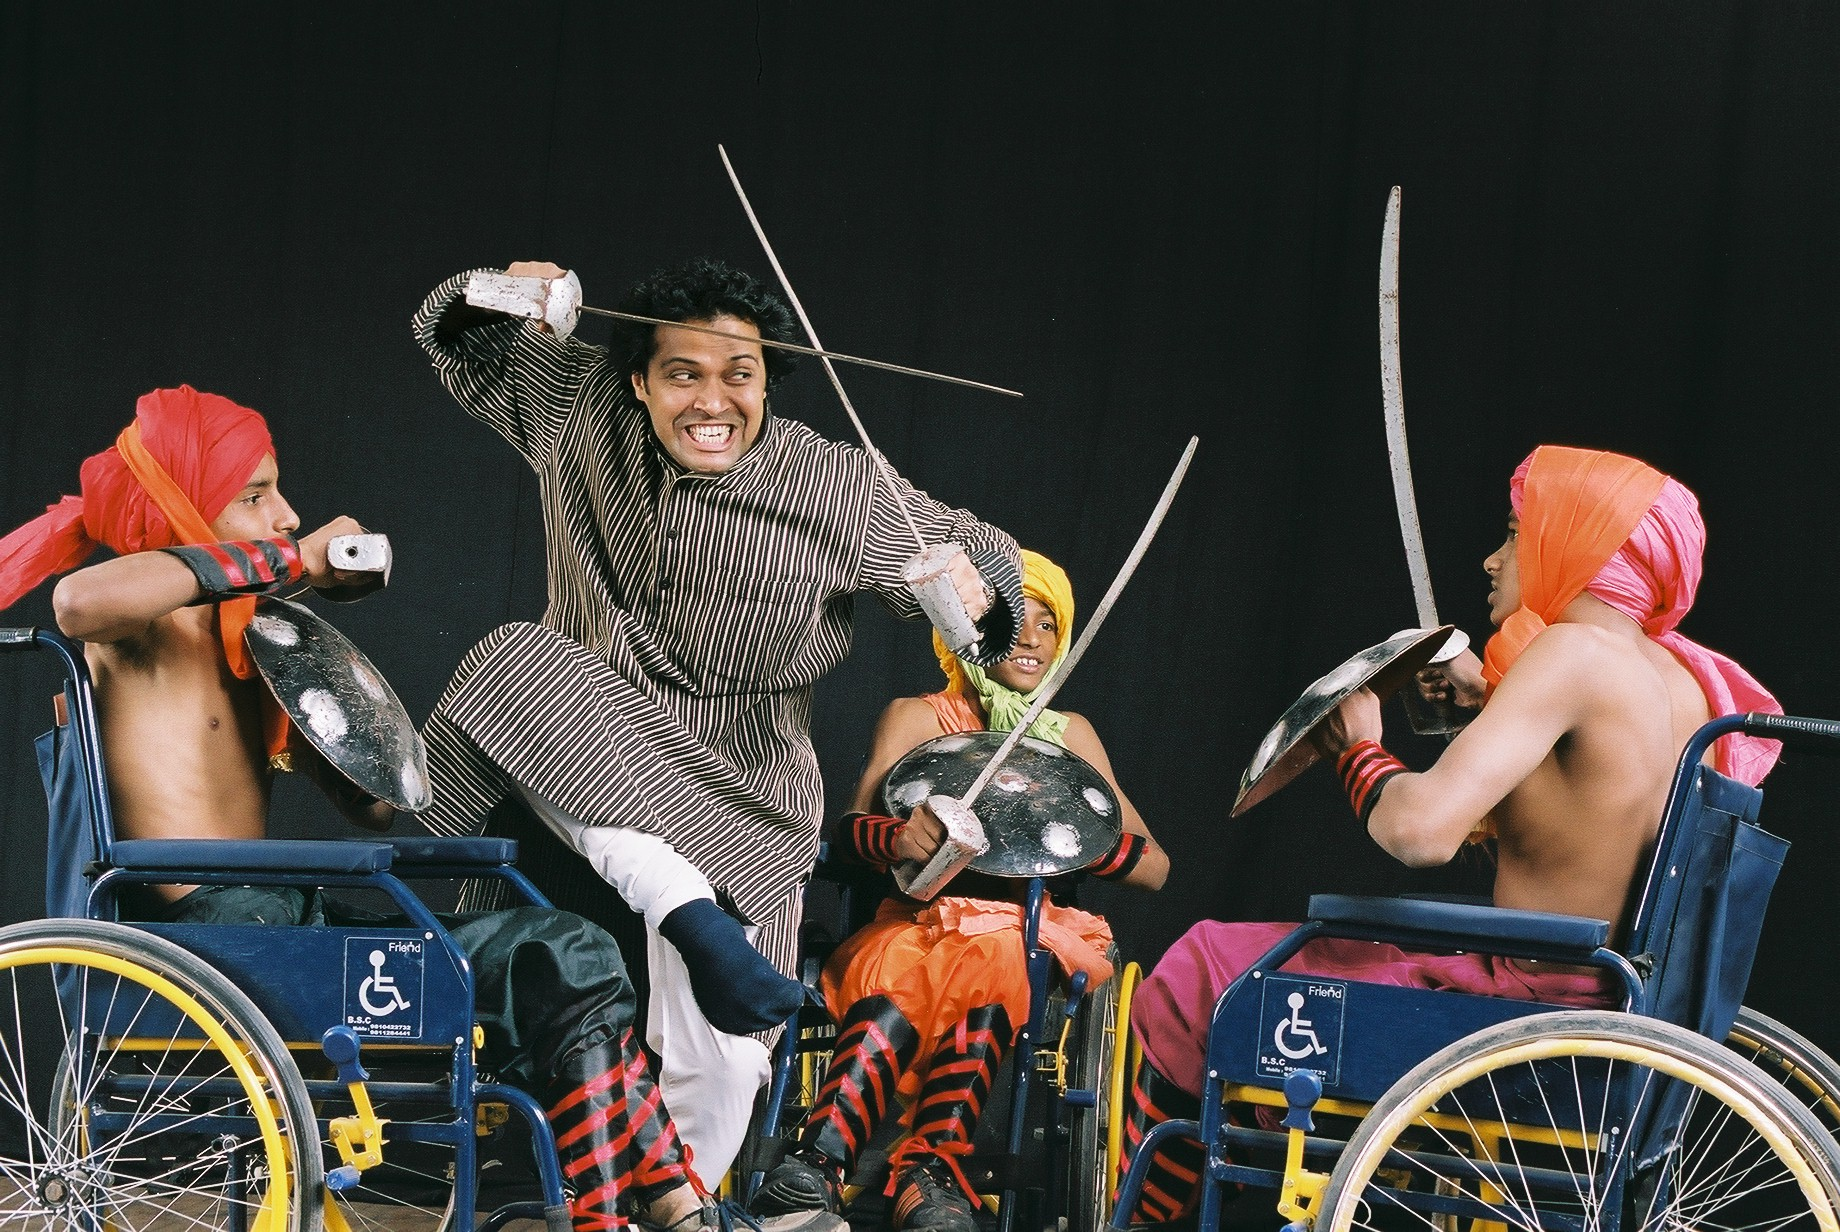 3. syed sallauddin Pasha Training Differently Abled On Wheelchairs